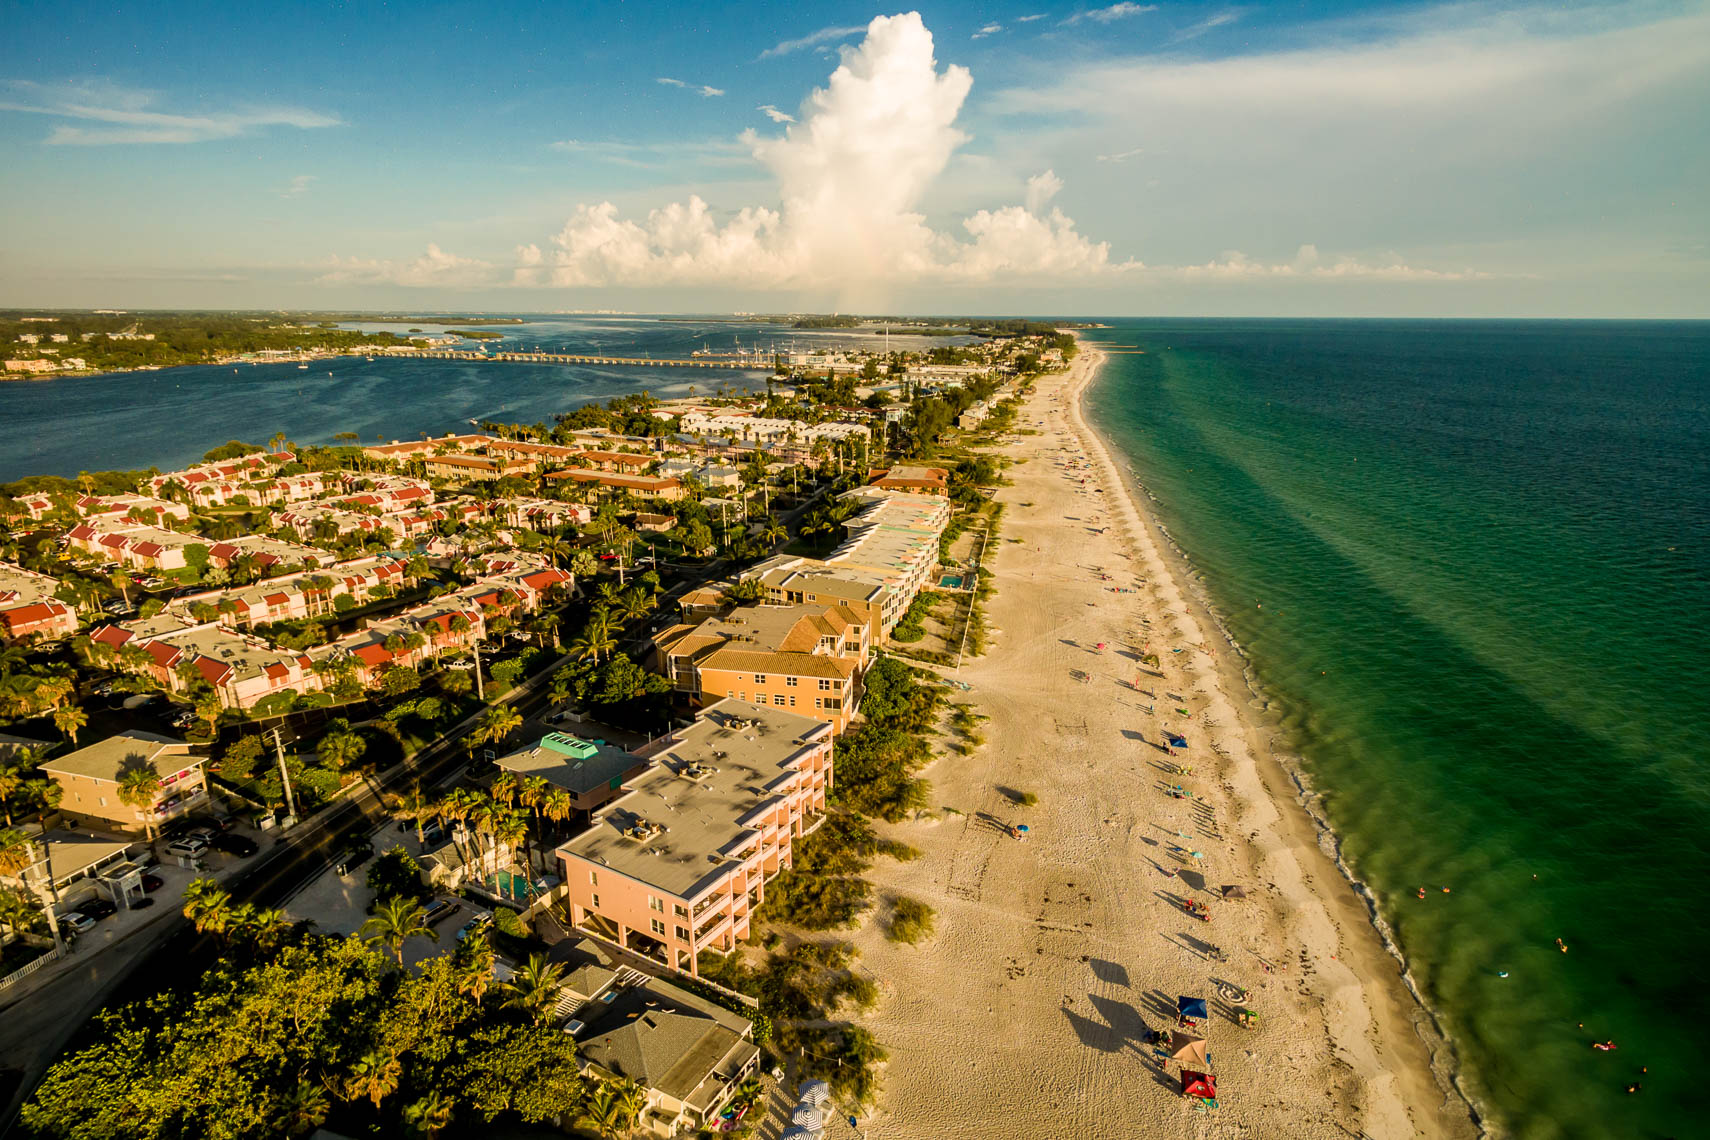 Aerial drone view of Bradenton Beach at sunset